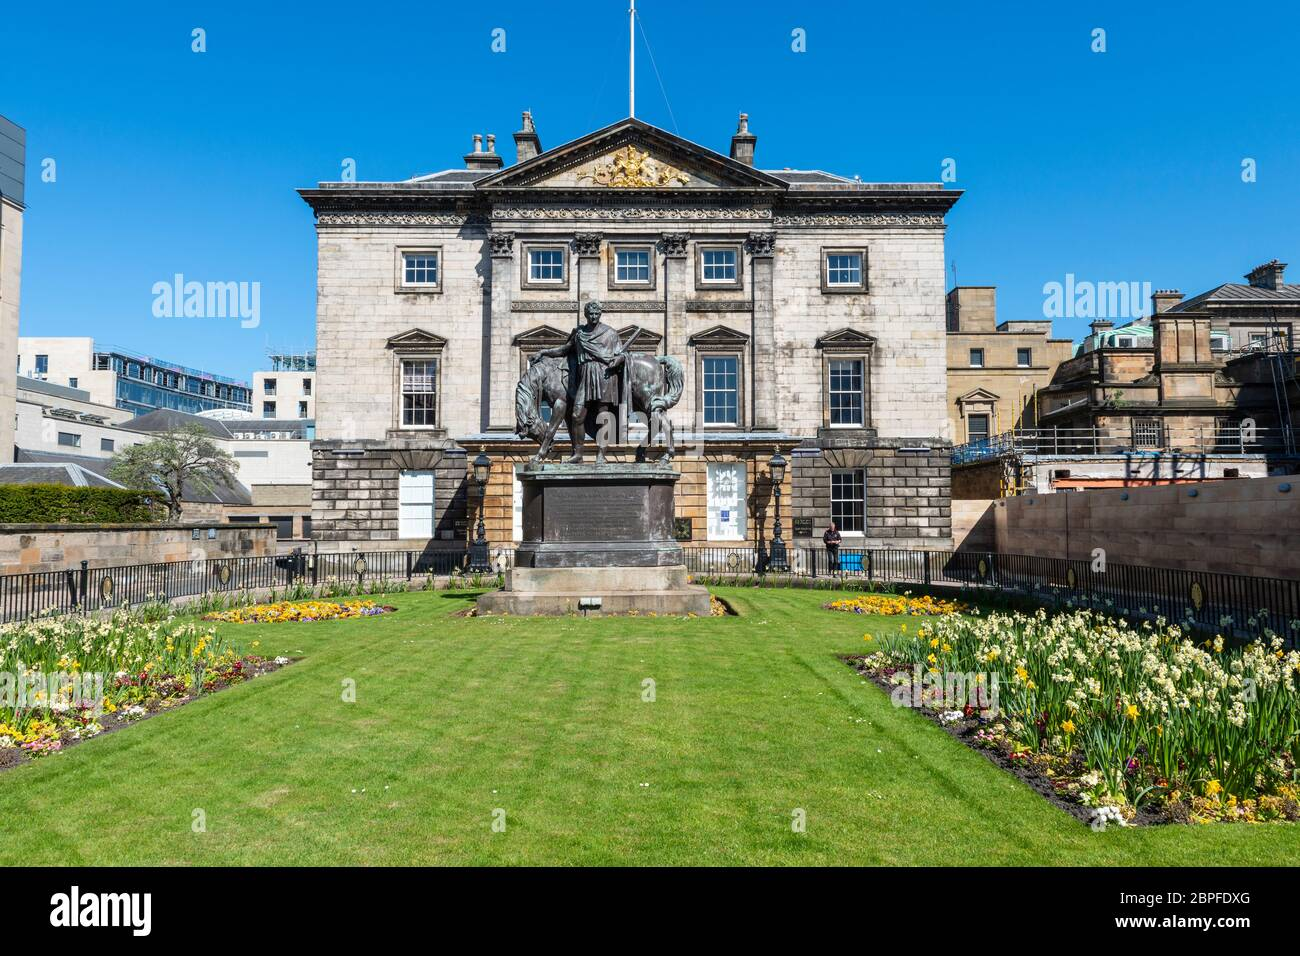 Dundas House, Royal Bank of Scotland head office, with statue of John Hope in garden in front - St Andrew Square, Edinburgh New Town, Scotland, UK Stock Photo